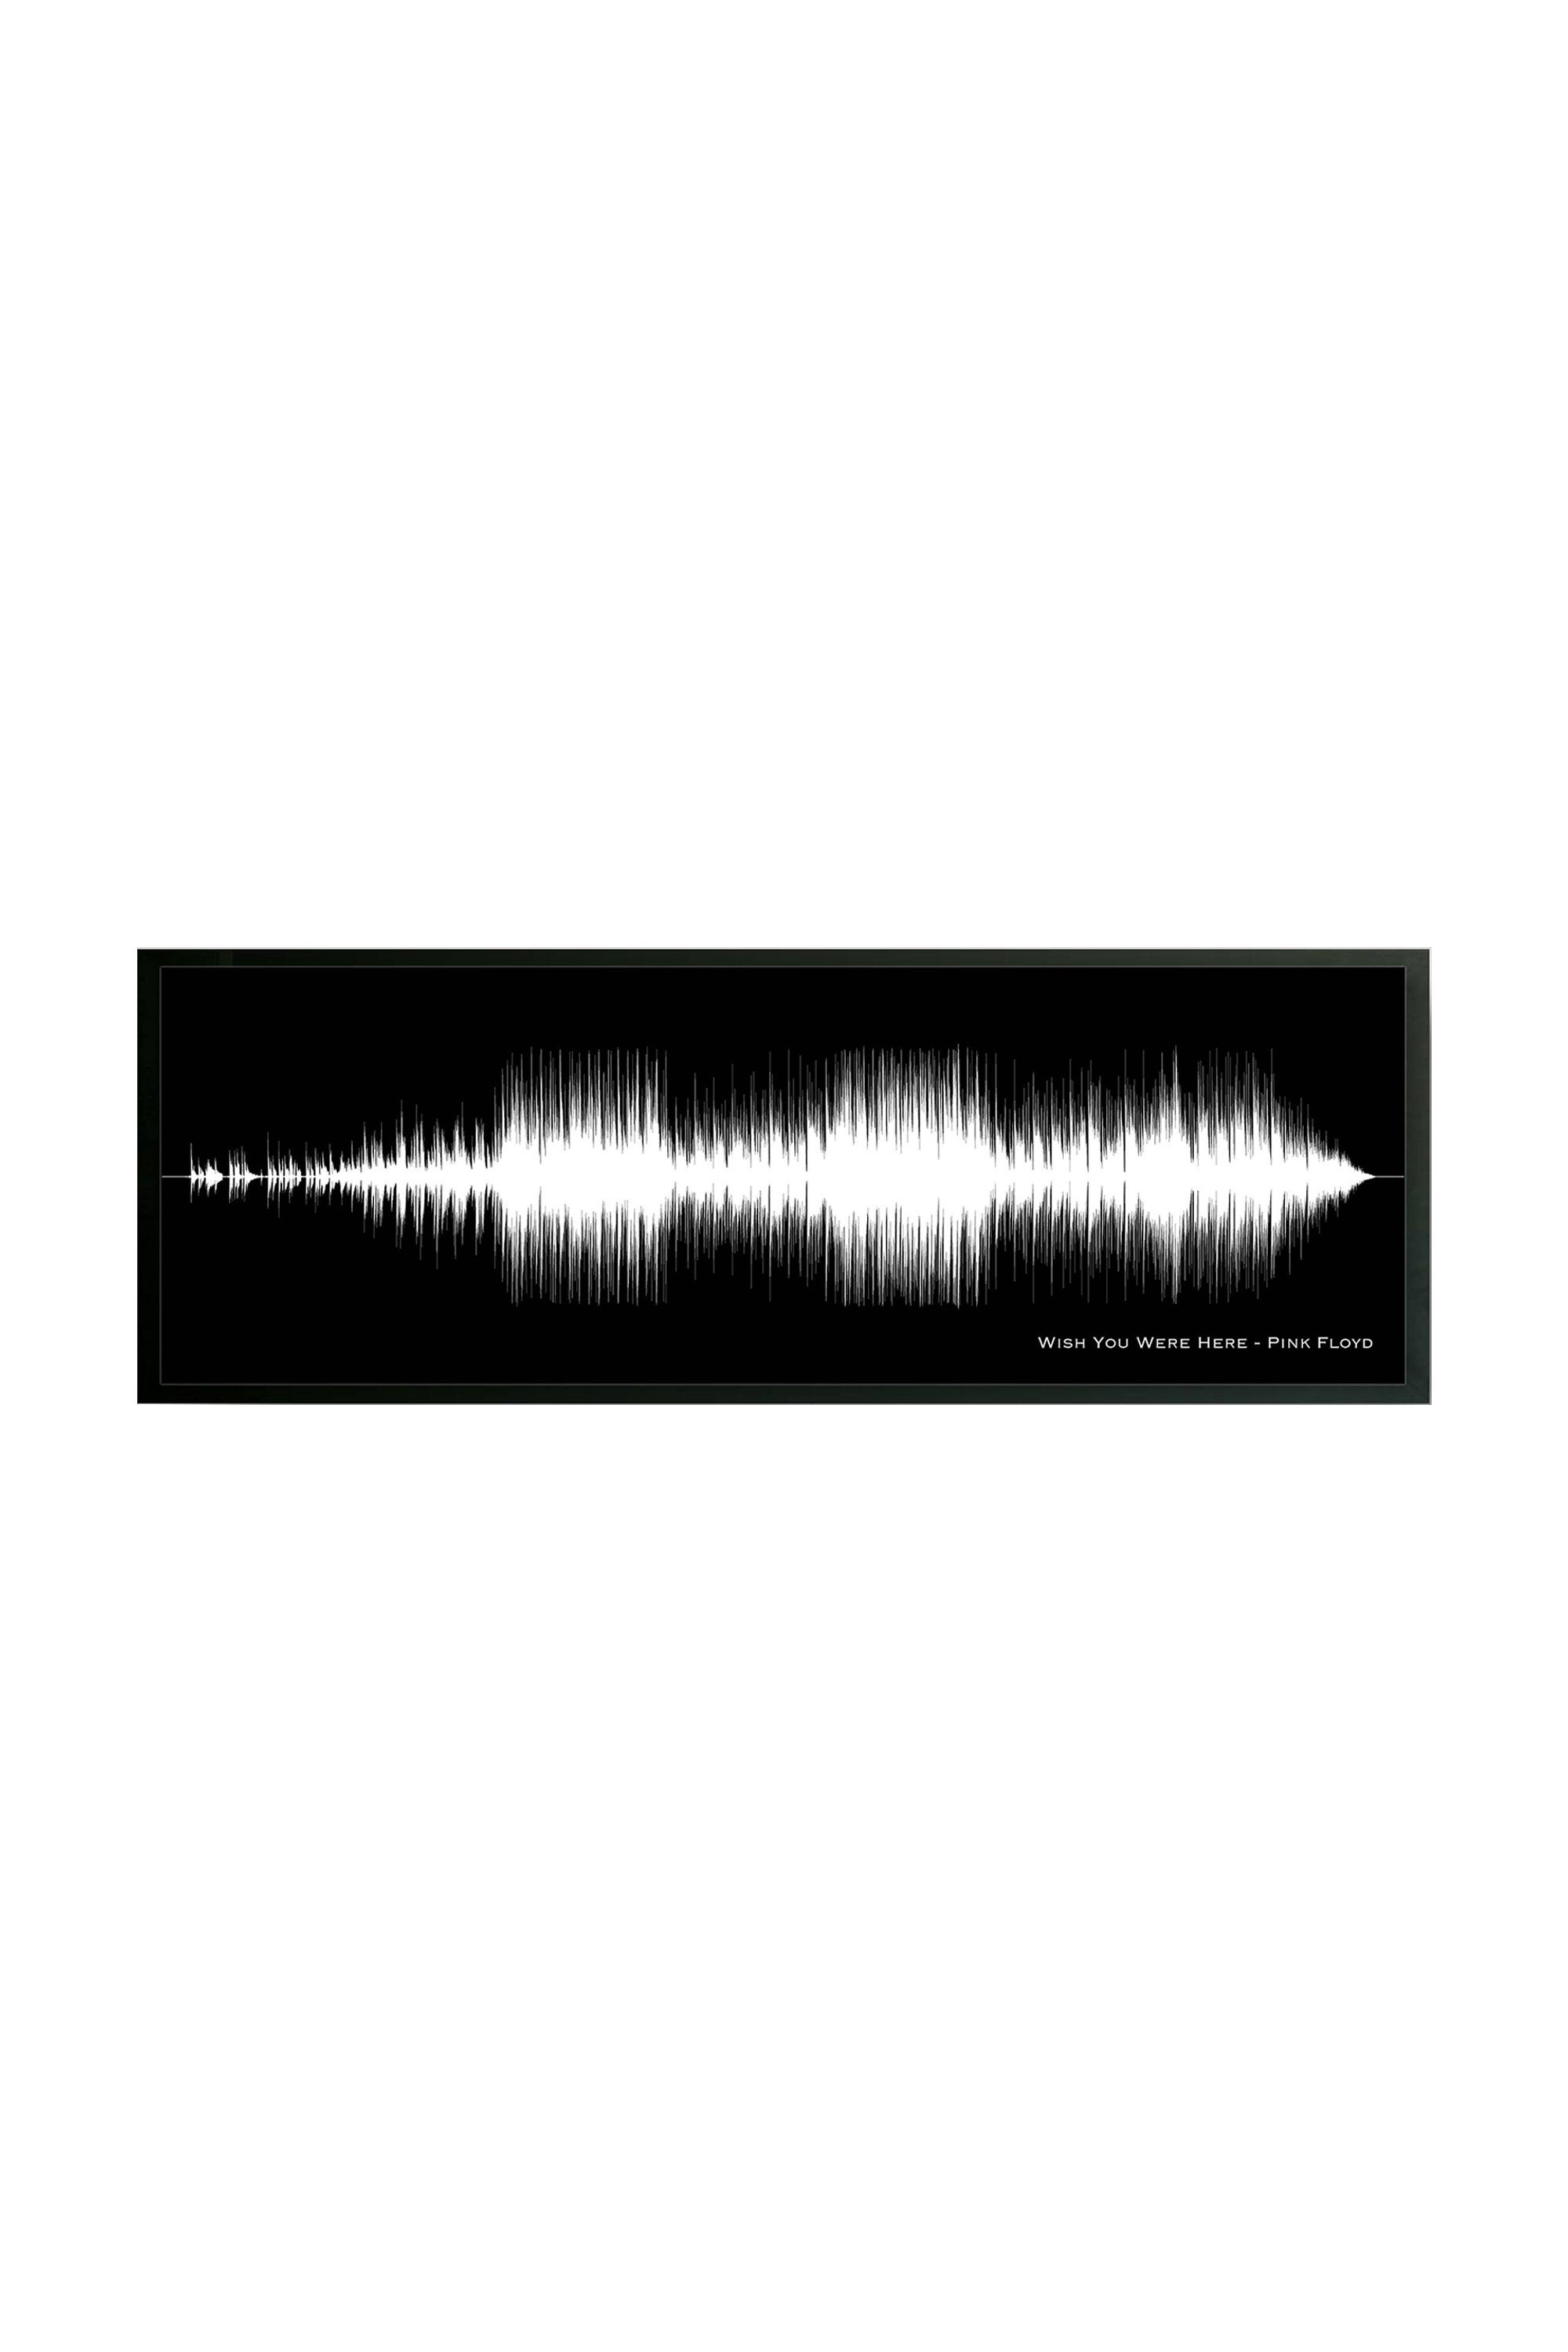 Gifts for Music Lovers - Custom Song Sound Wave Art Print